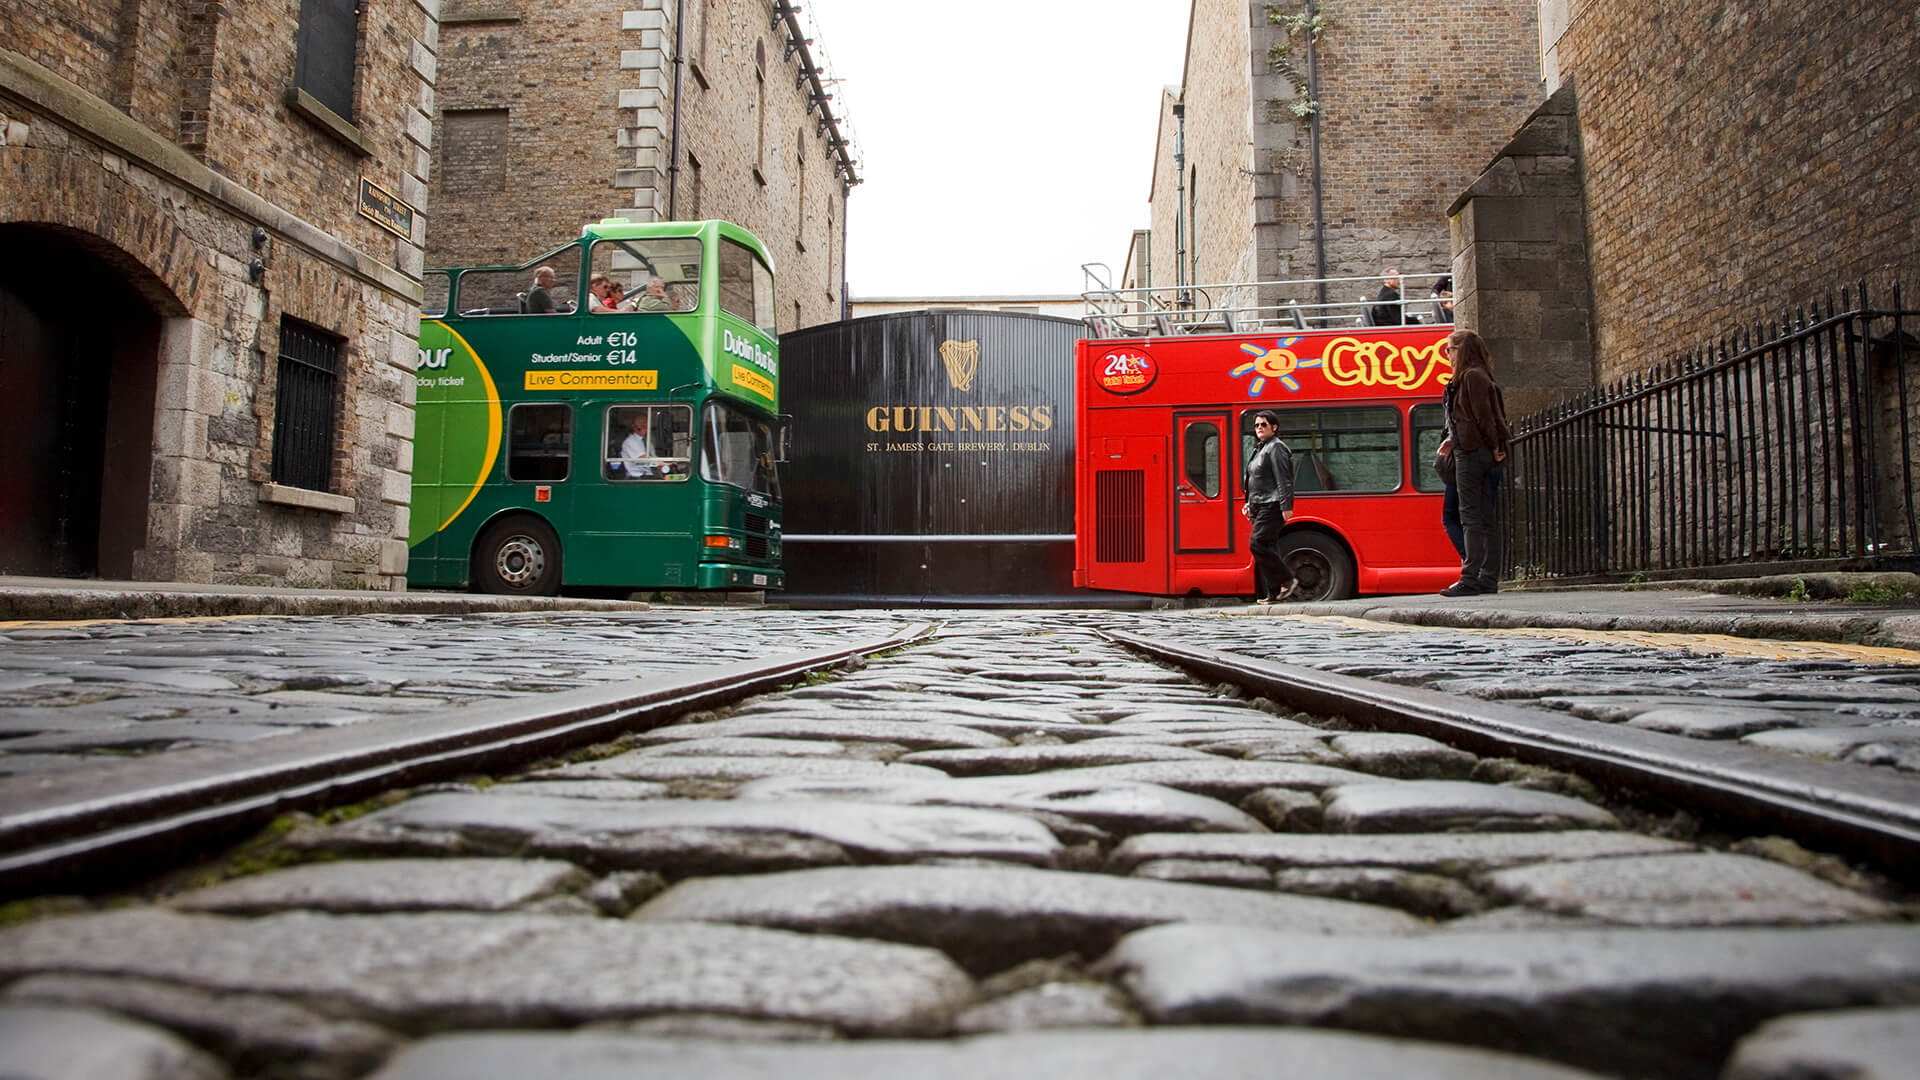 http://Guinness%20Gates%20and%20Dublin%20Tourism%20Buses